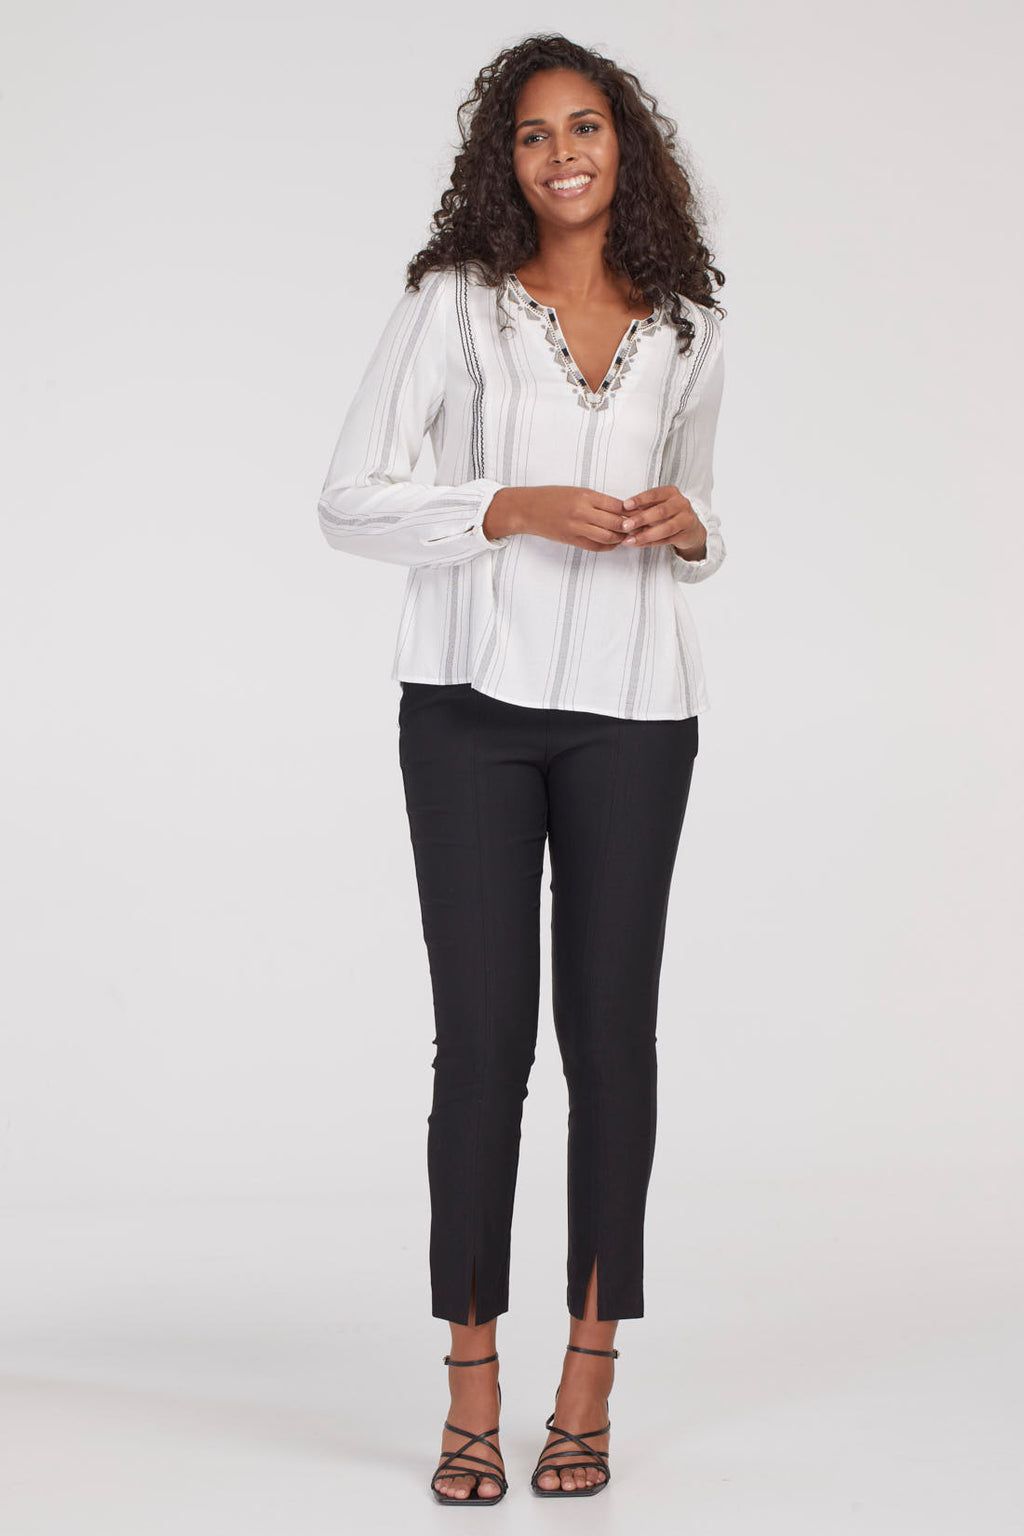 Flatten It Pull On Ankle Pant - dolly mama boutique